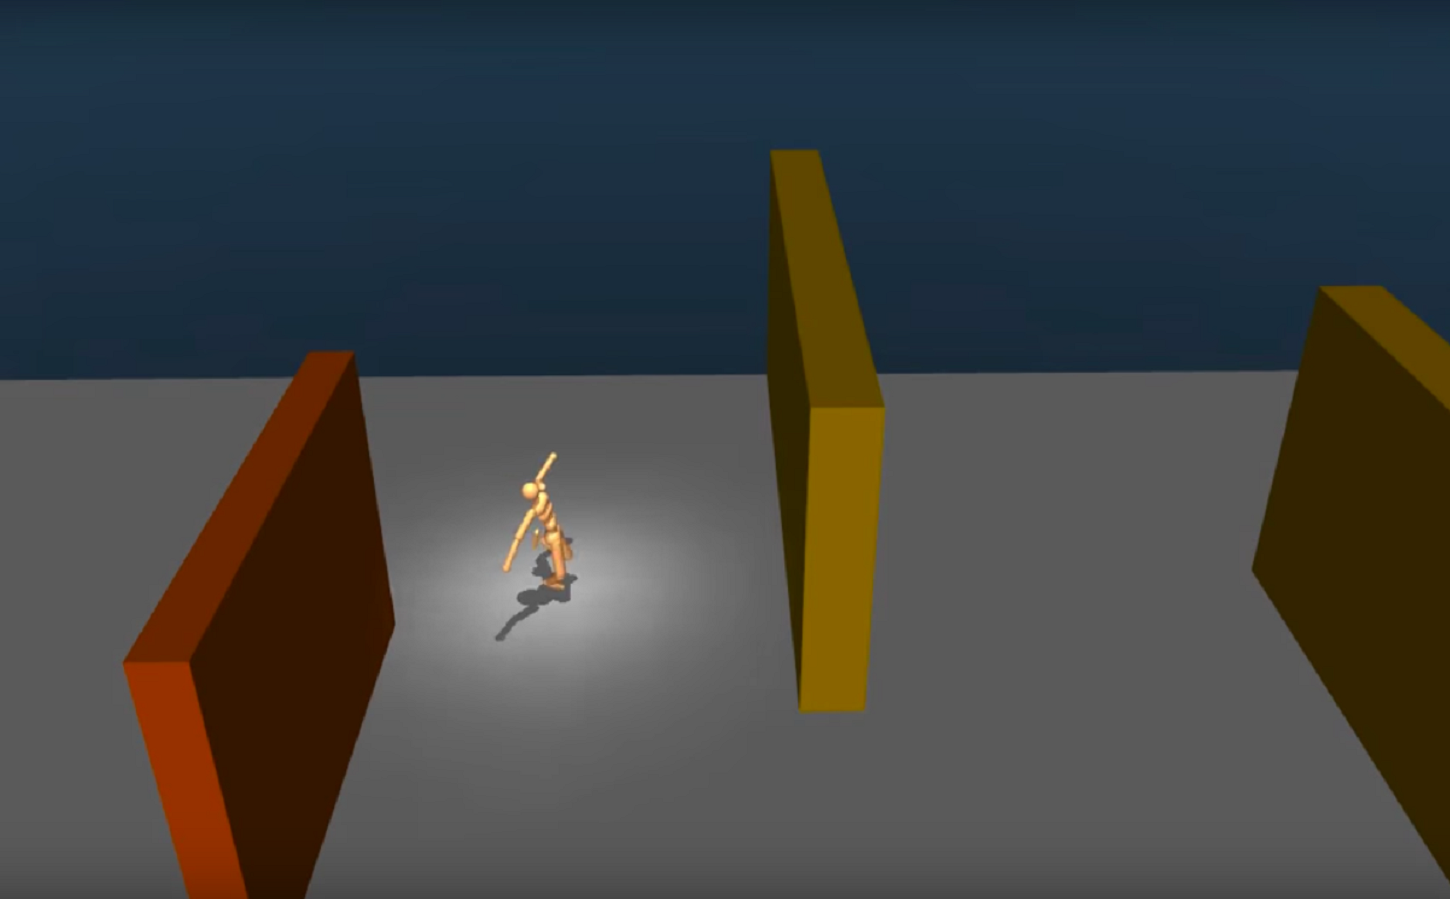 The humanoid figure running through obstacles